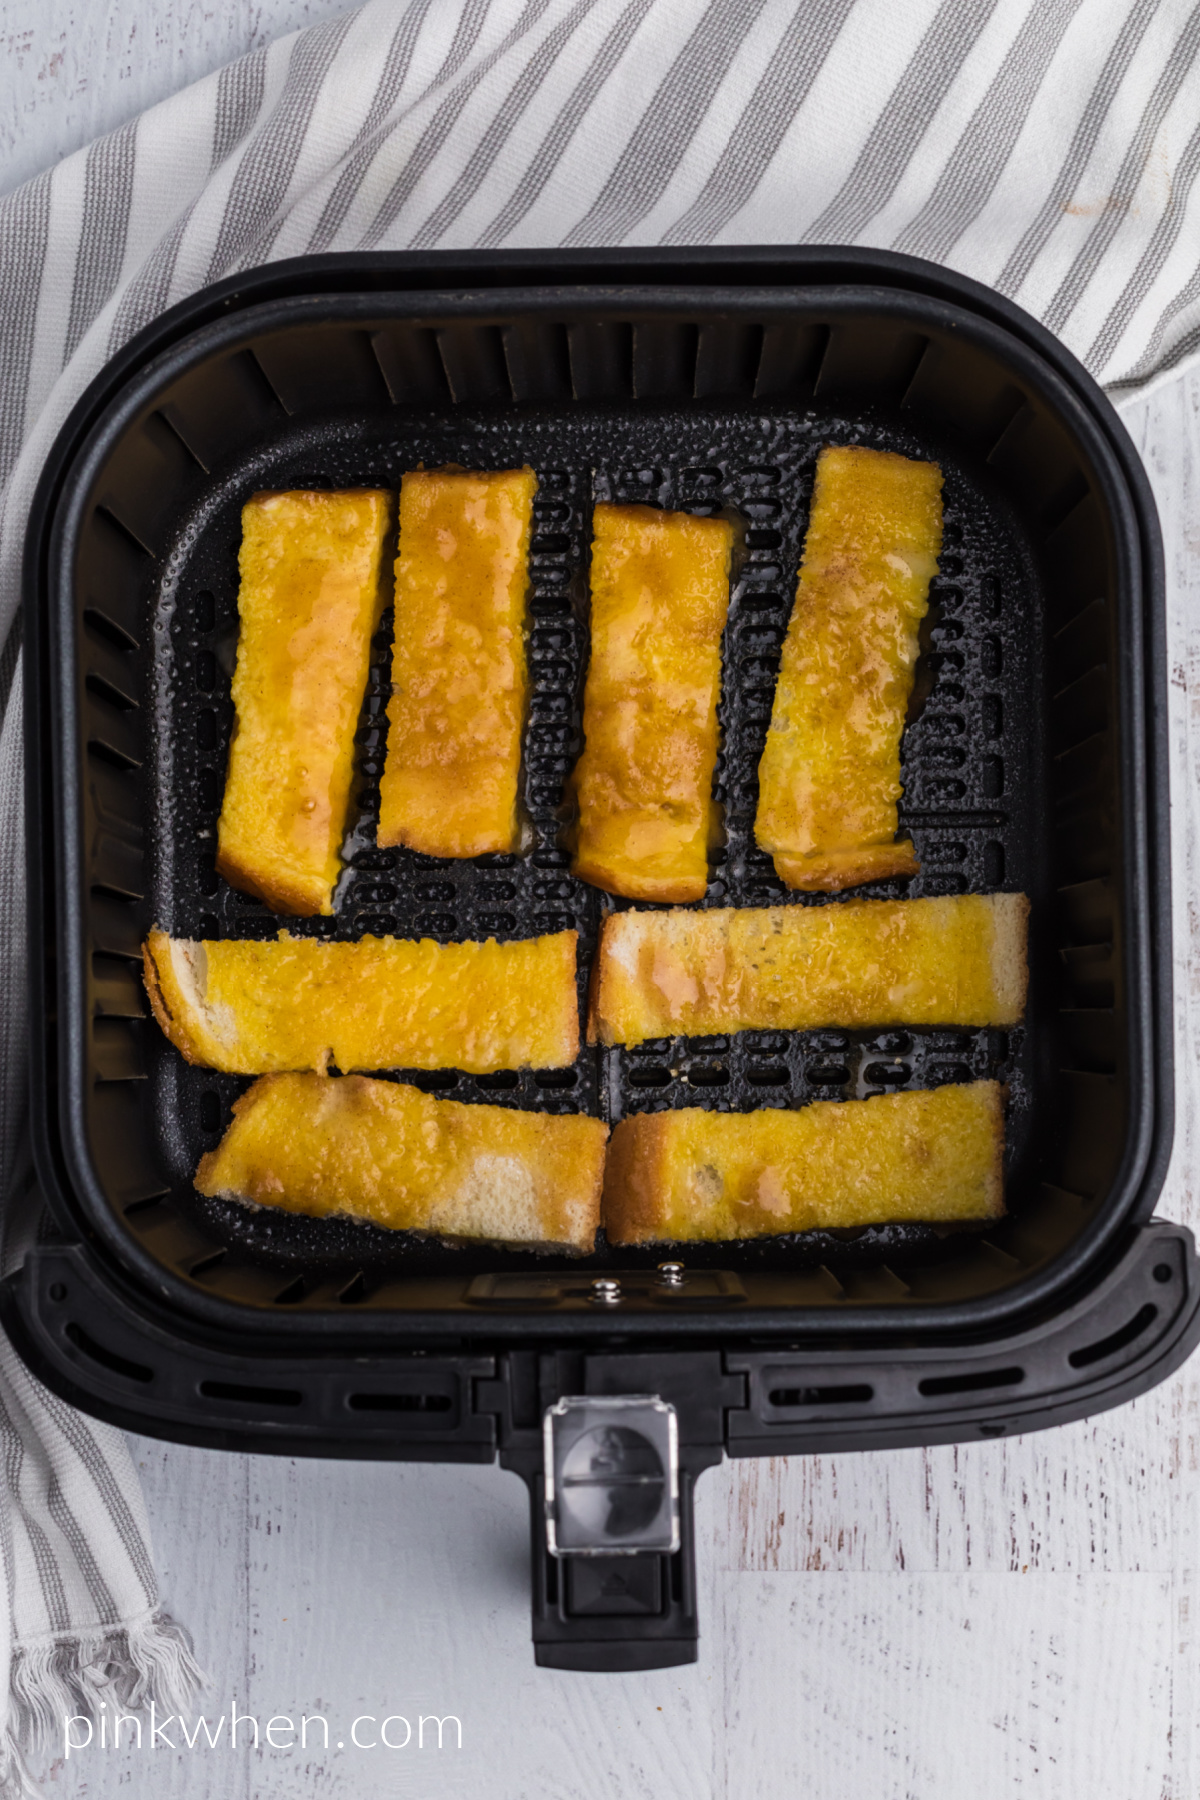 French toast sticks in the basket of the air fryer ready to be cooked.